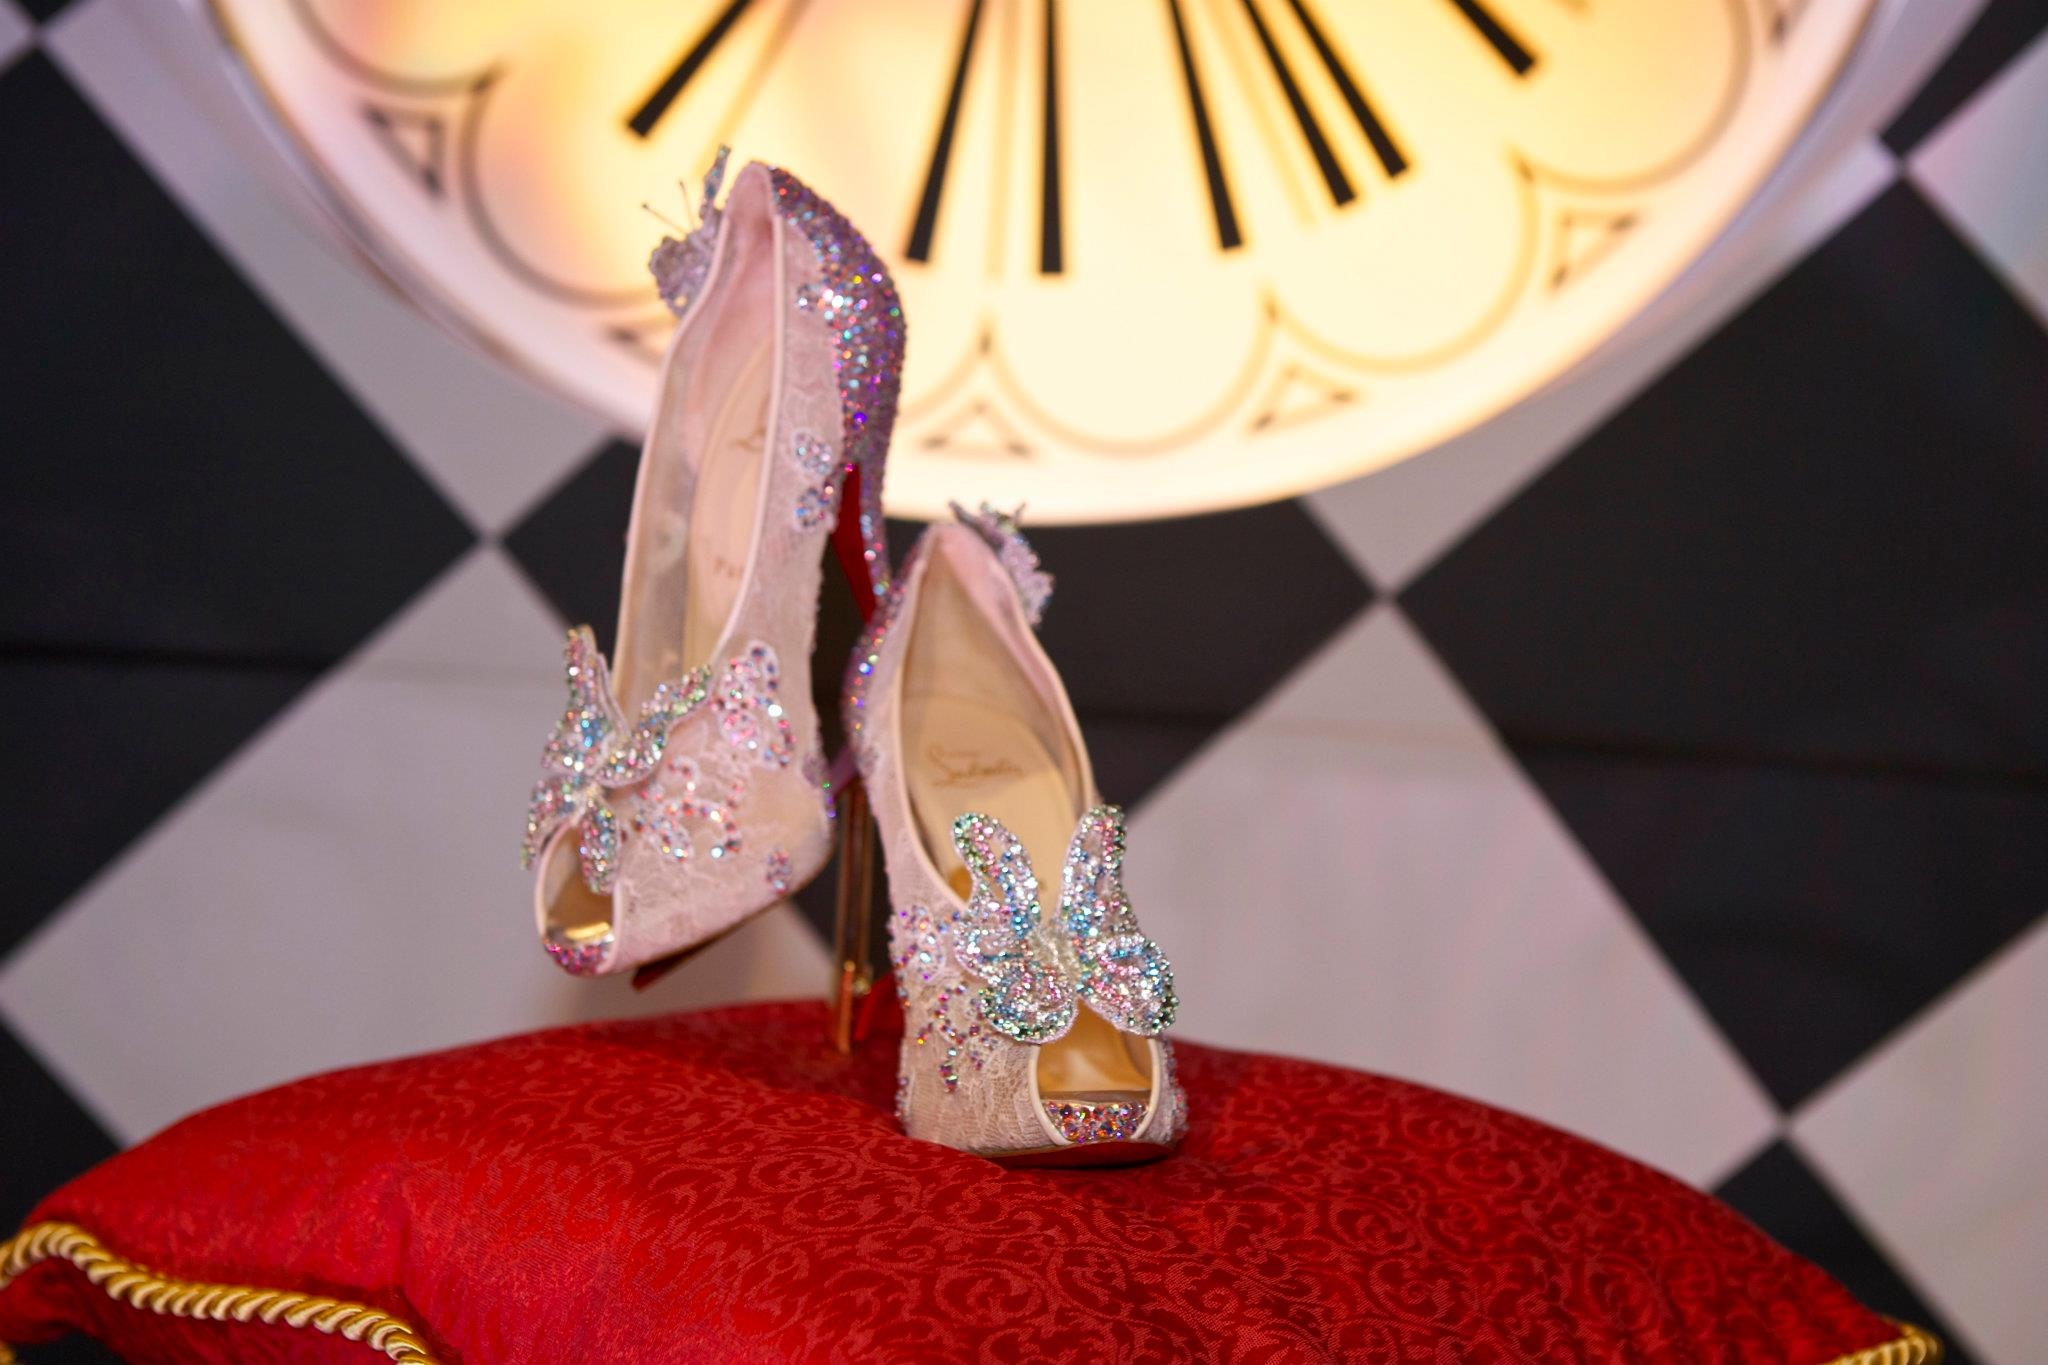 louboutin shoes burlesque price